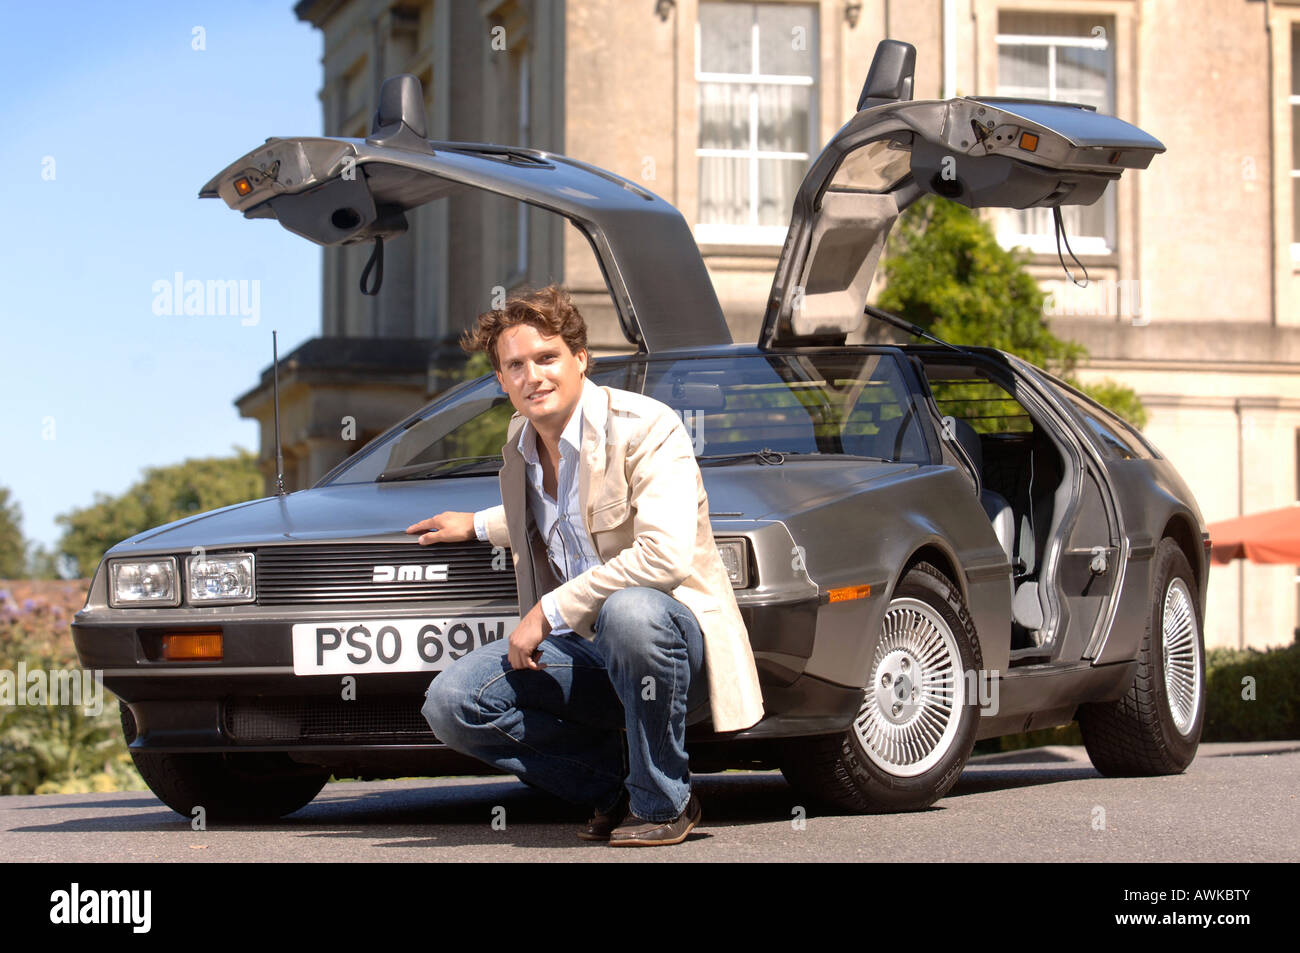 STEPHEN BOWMAN OF THE CLASSICAL POP GROUP BLAKE WITH HIS DE LOREAN CAR AUG 2007 Stock Photo